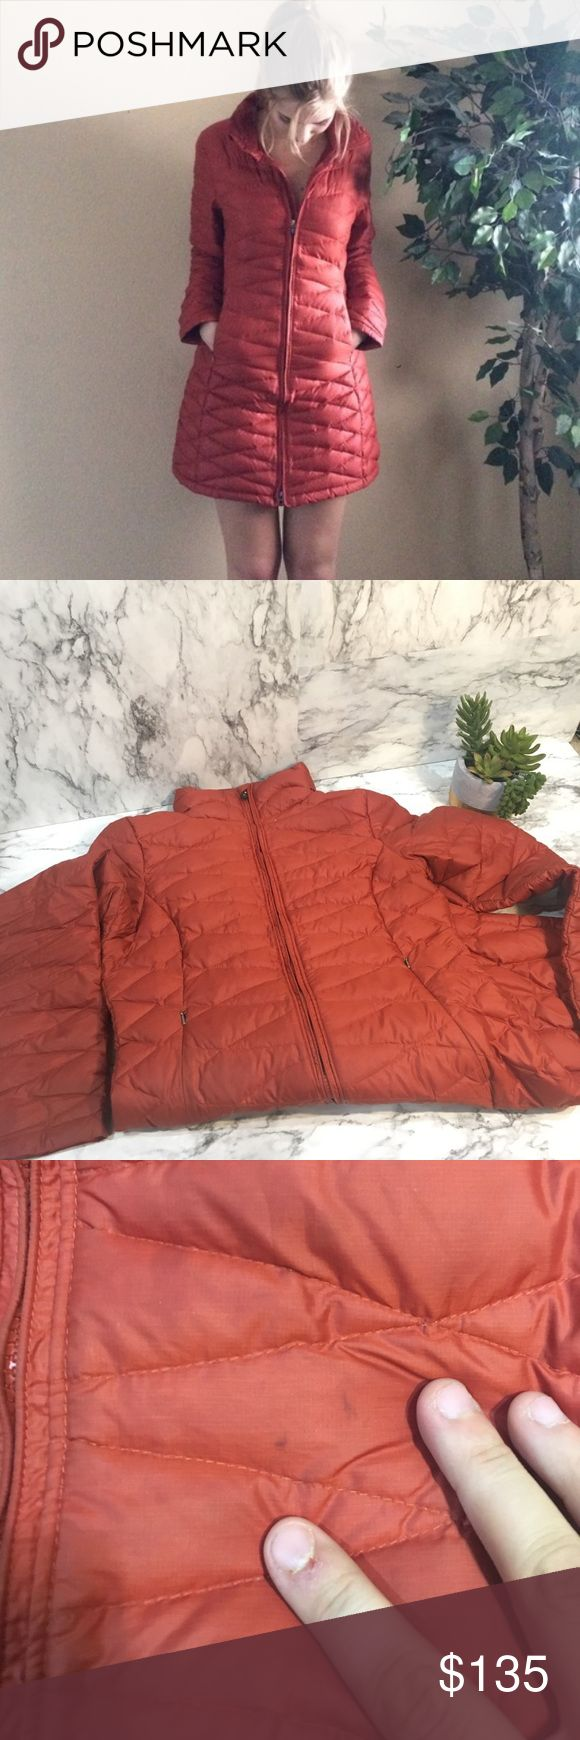 Patagonia parka burnt orange M Good preowned condition has a few hard to see marks I haven't tried to remove see pic. Warm and long in length. Just too small on me now. Down coat Patagonia Jackets & Coats Puffers